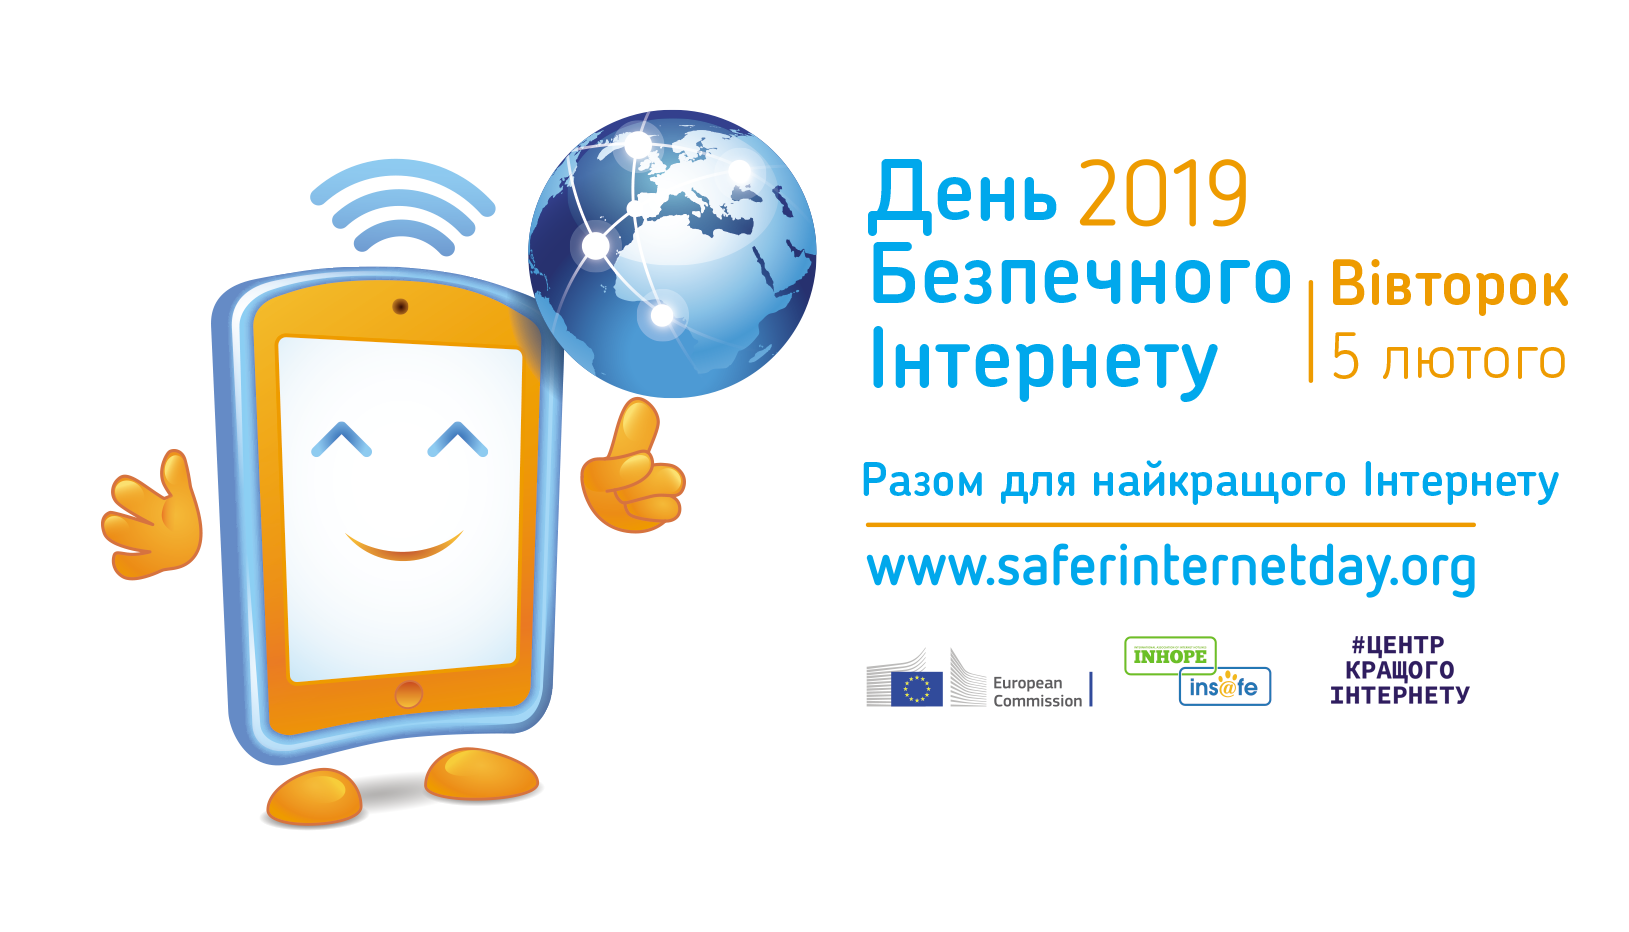 SID2019 EC InsafeINHOPE SpaceForPartnerLogo